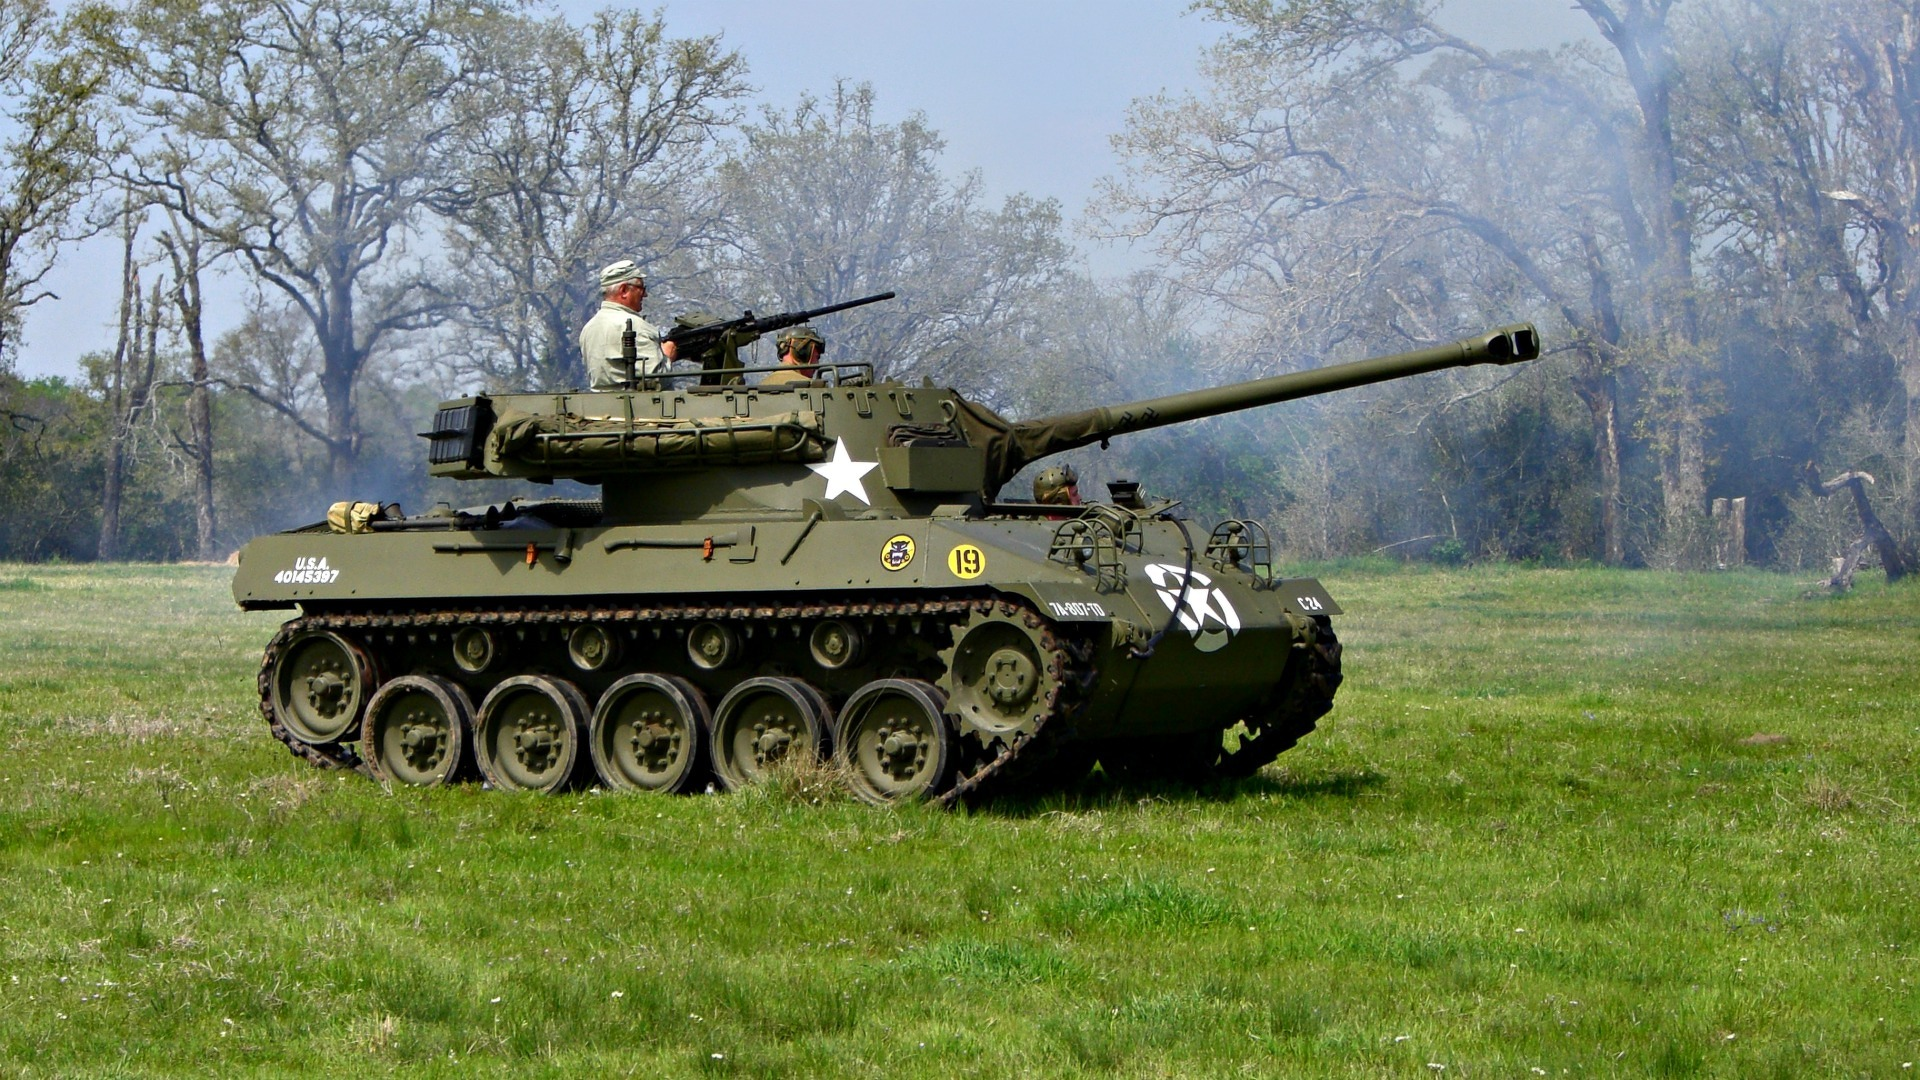 e of the world s fastest tanks was built by Buick